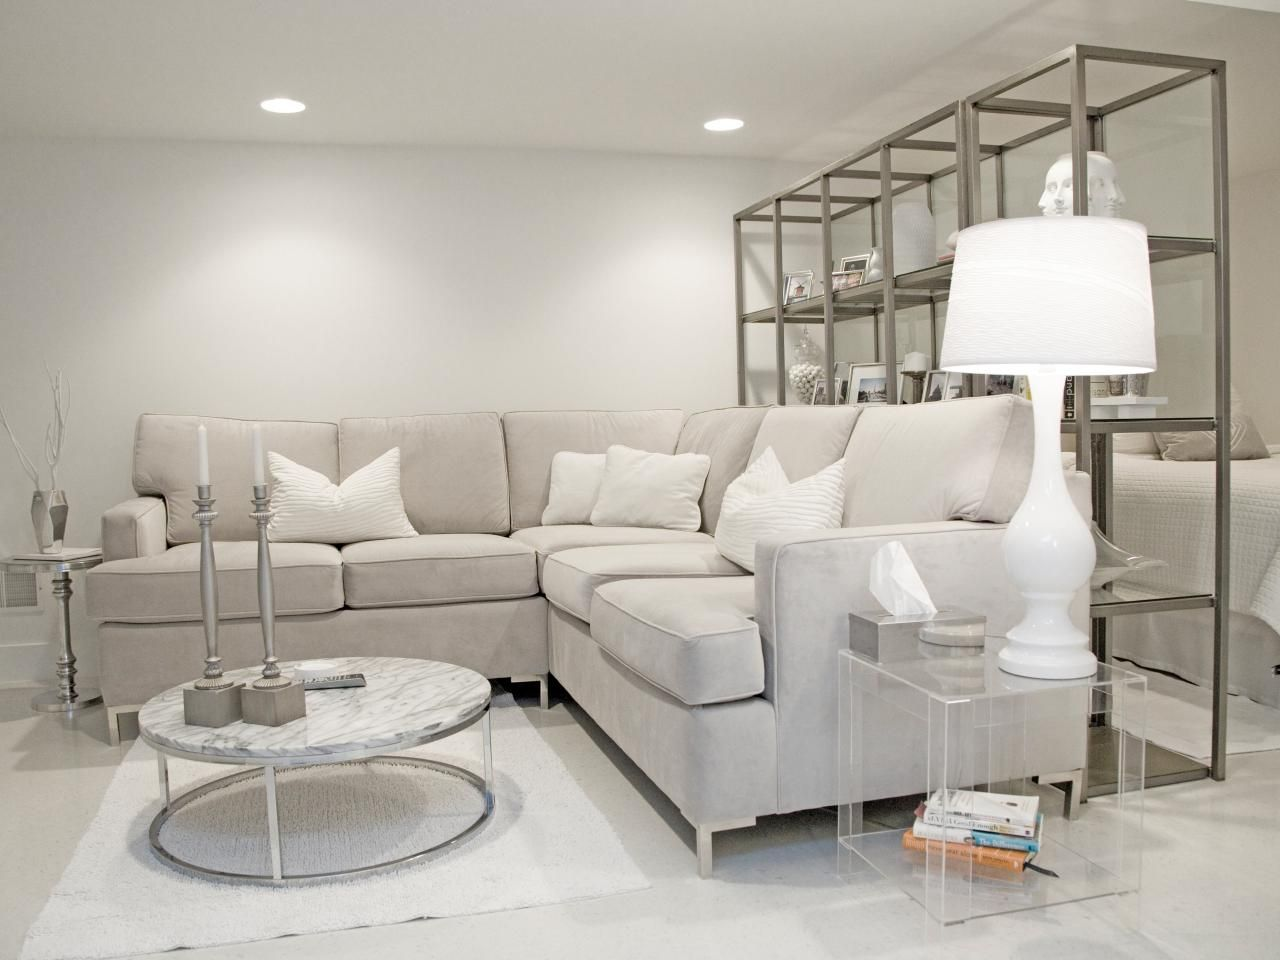 White And Grey Room grey in home decor: passing trend or here to stay?